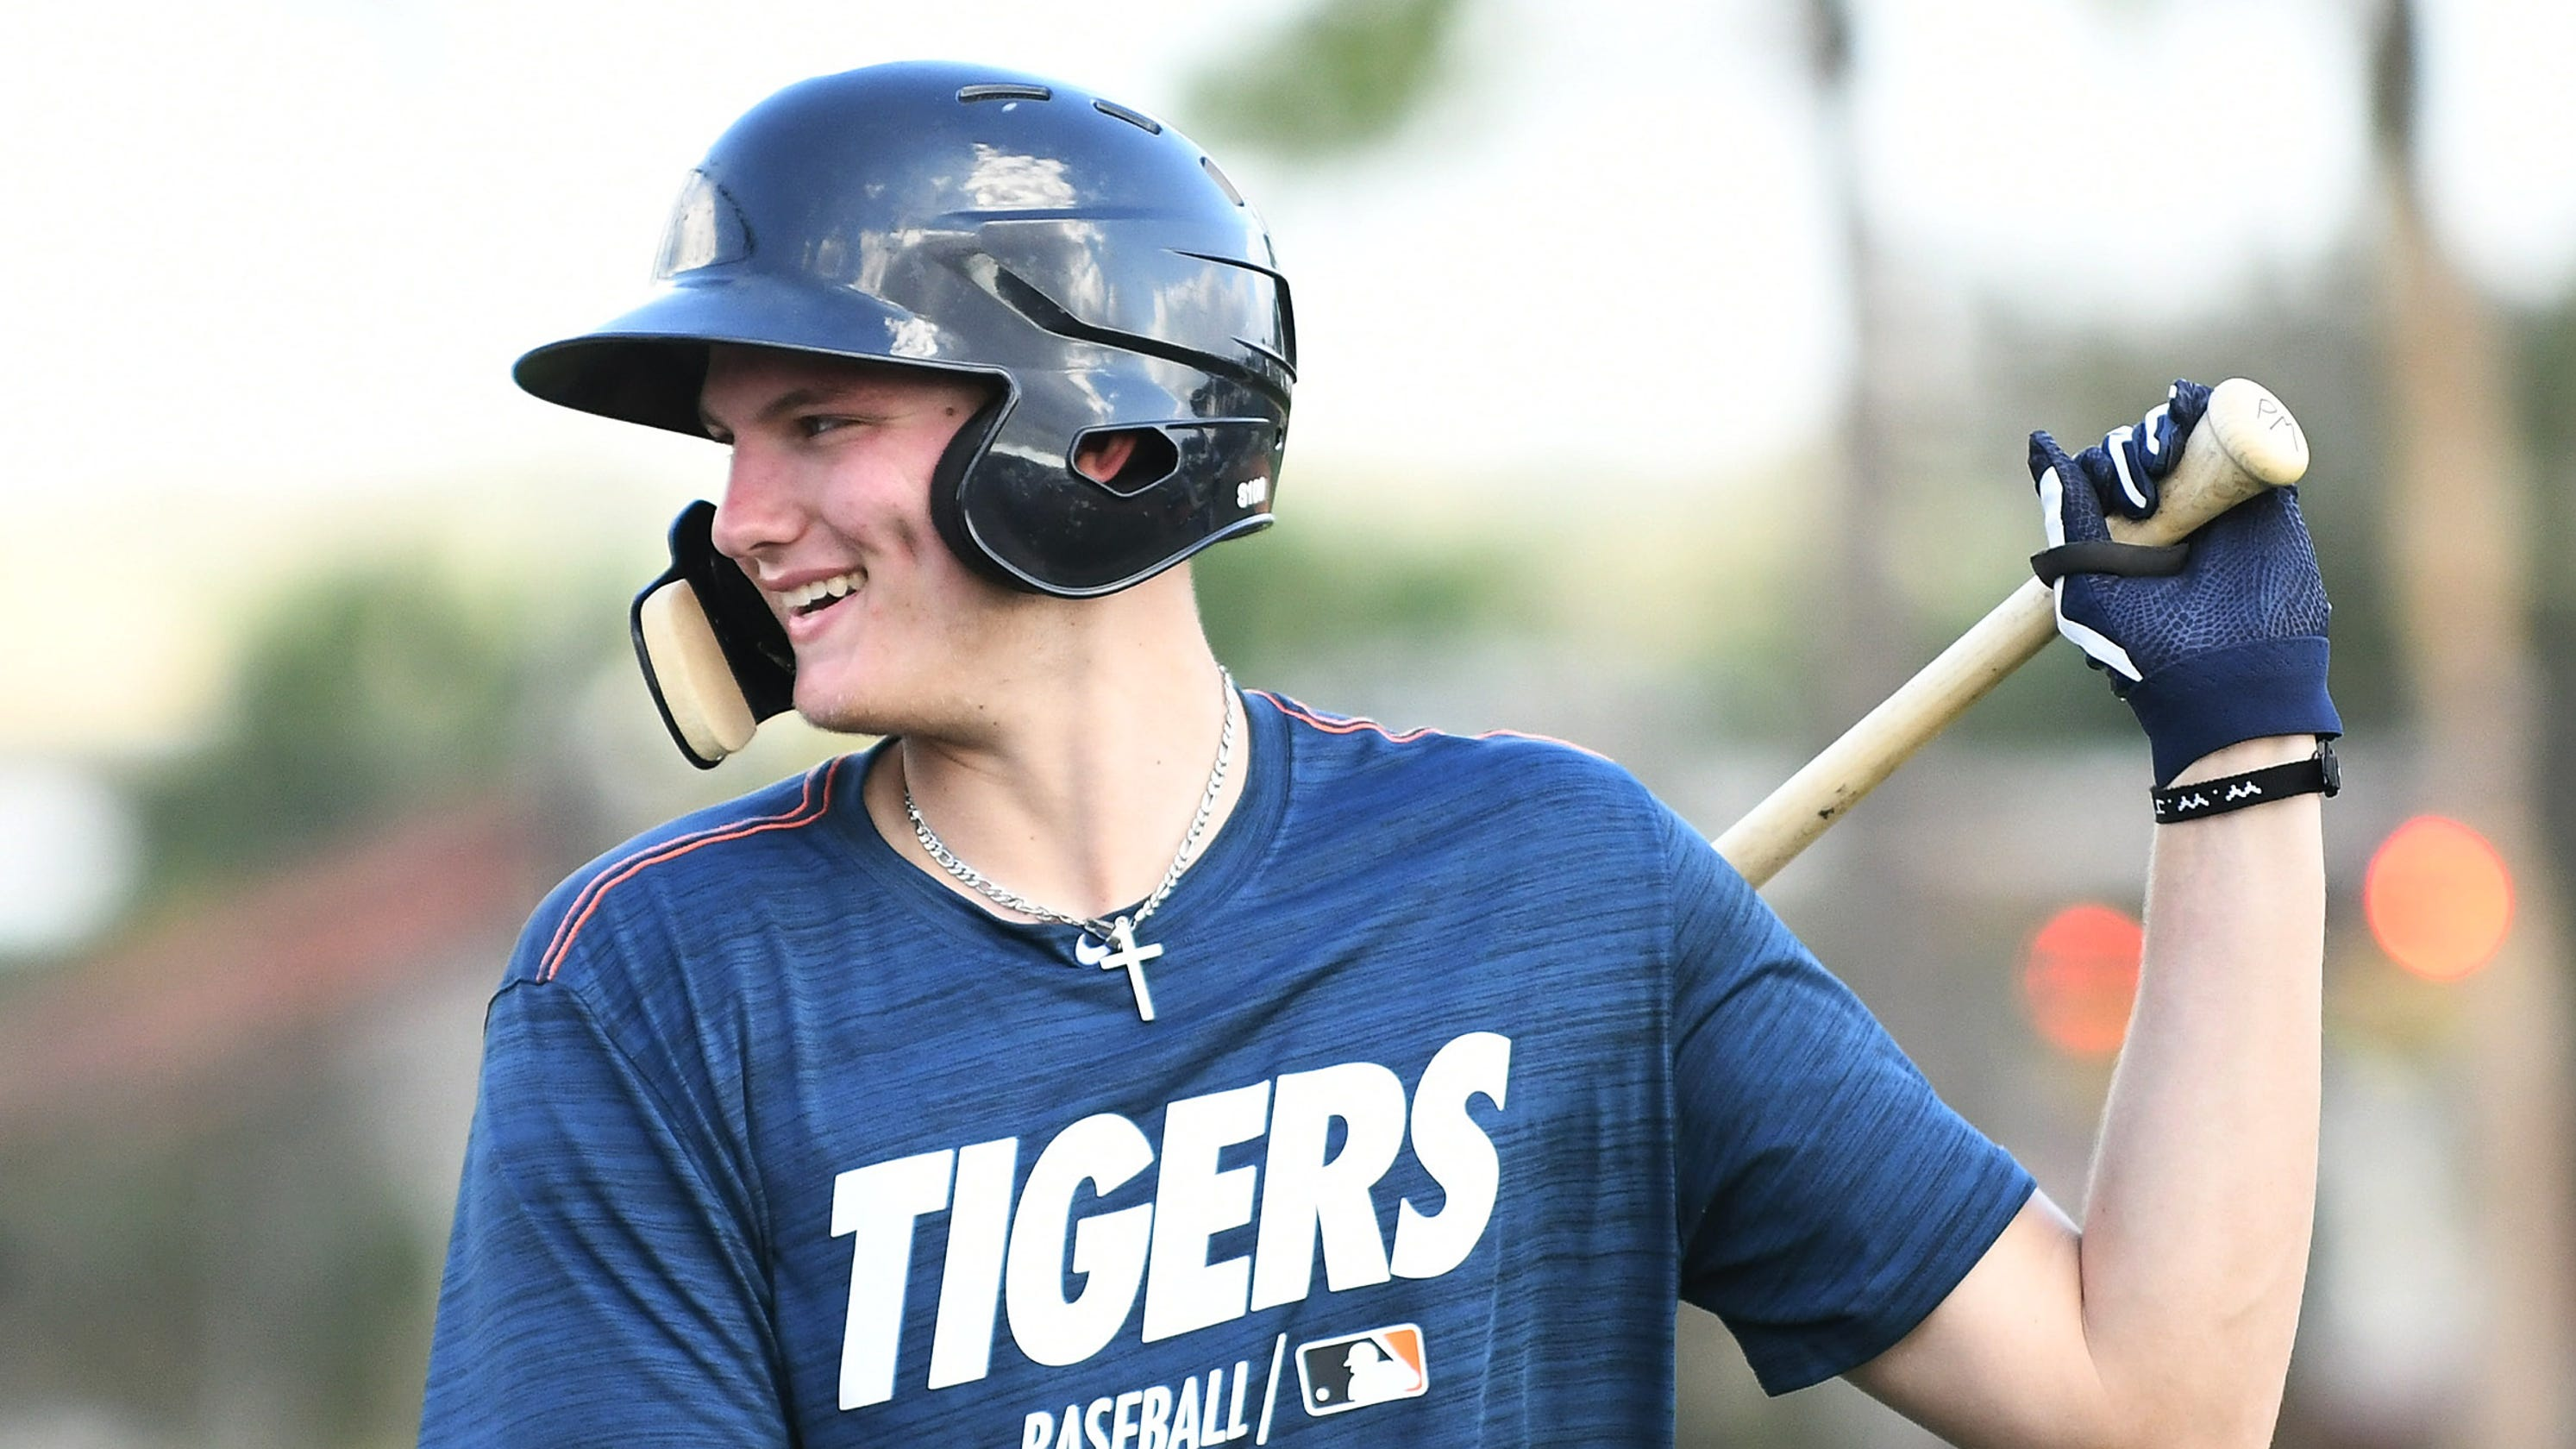 Tigers practice patience as '18 picks Parker Meadows, Kingston Liniak learn the ropes